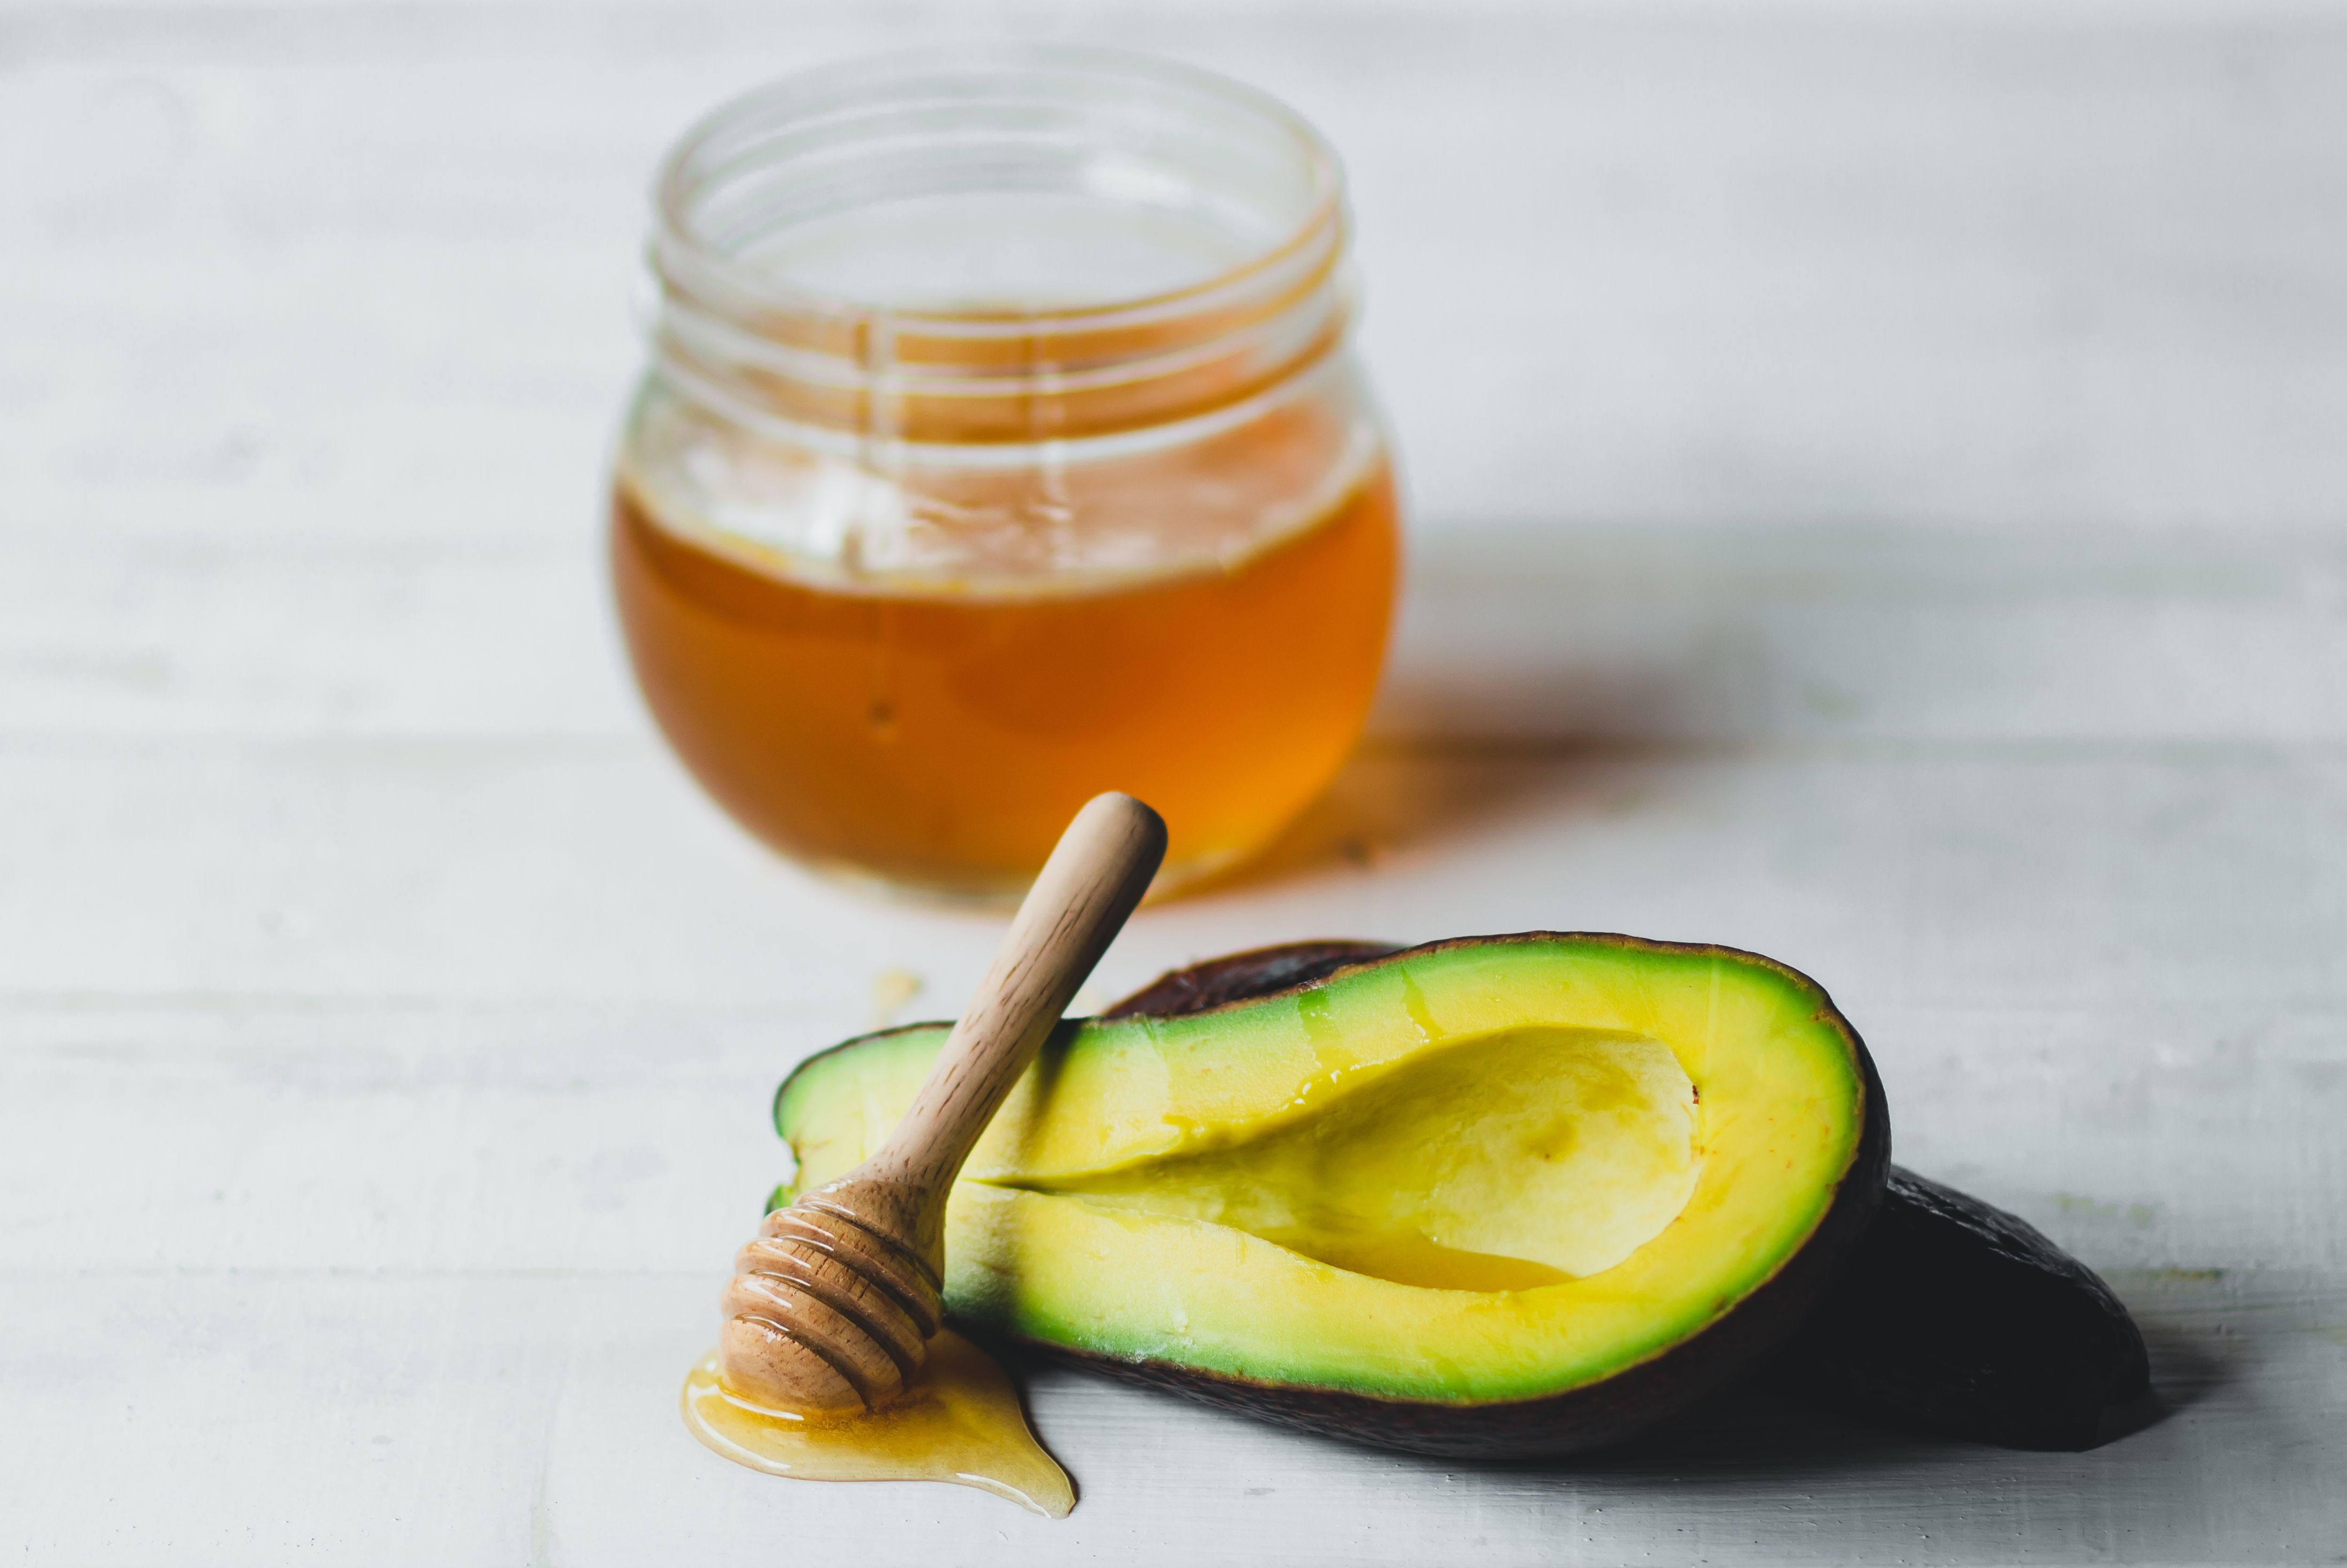 Avocado and honey On the white table